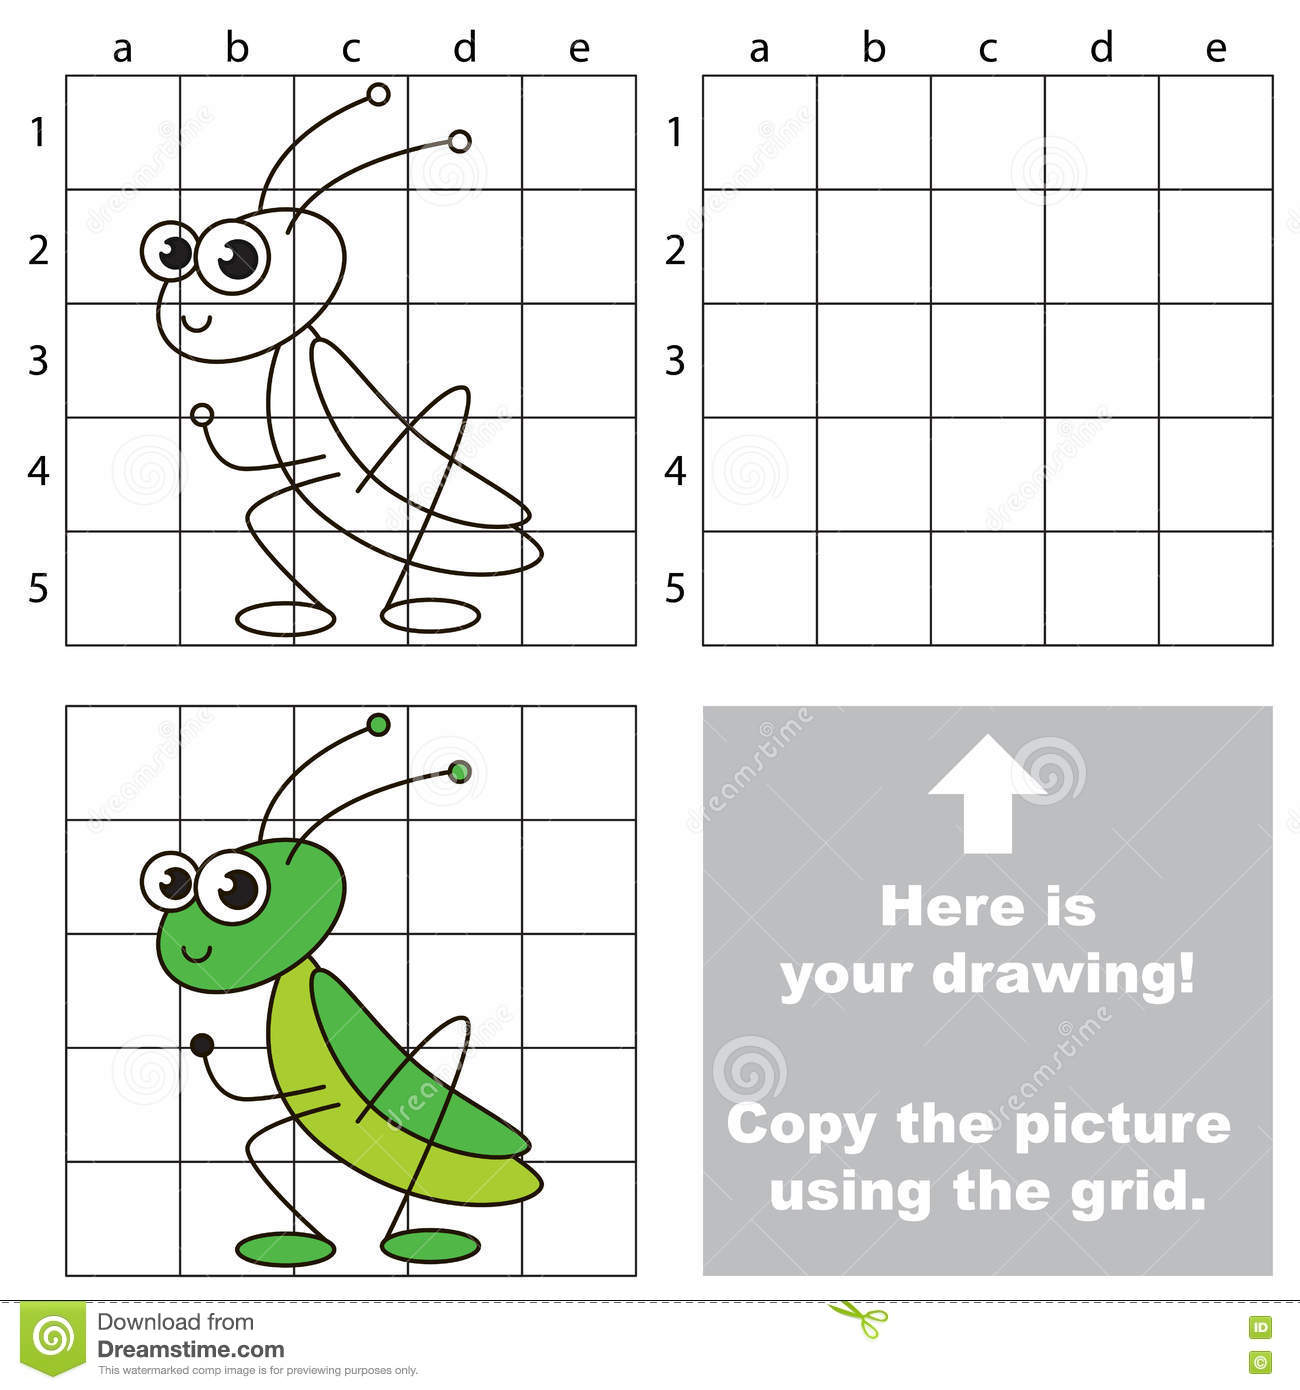 Simple Drawing Using Lines : Copy the image using grid grasshopper stock vector